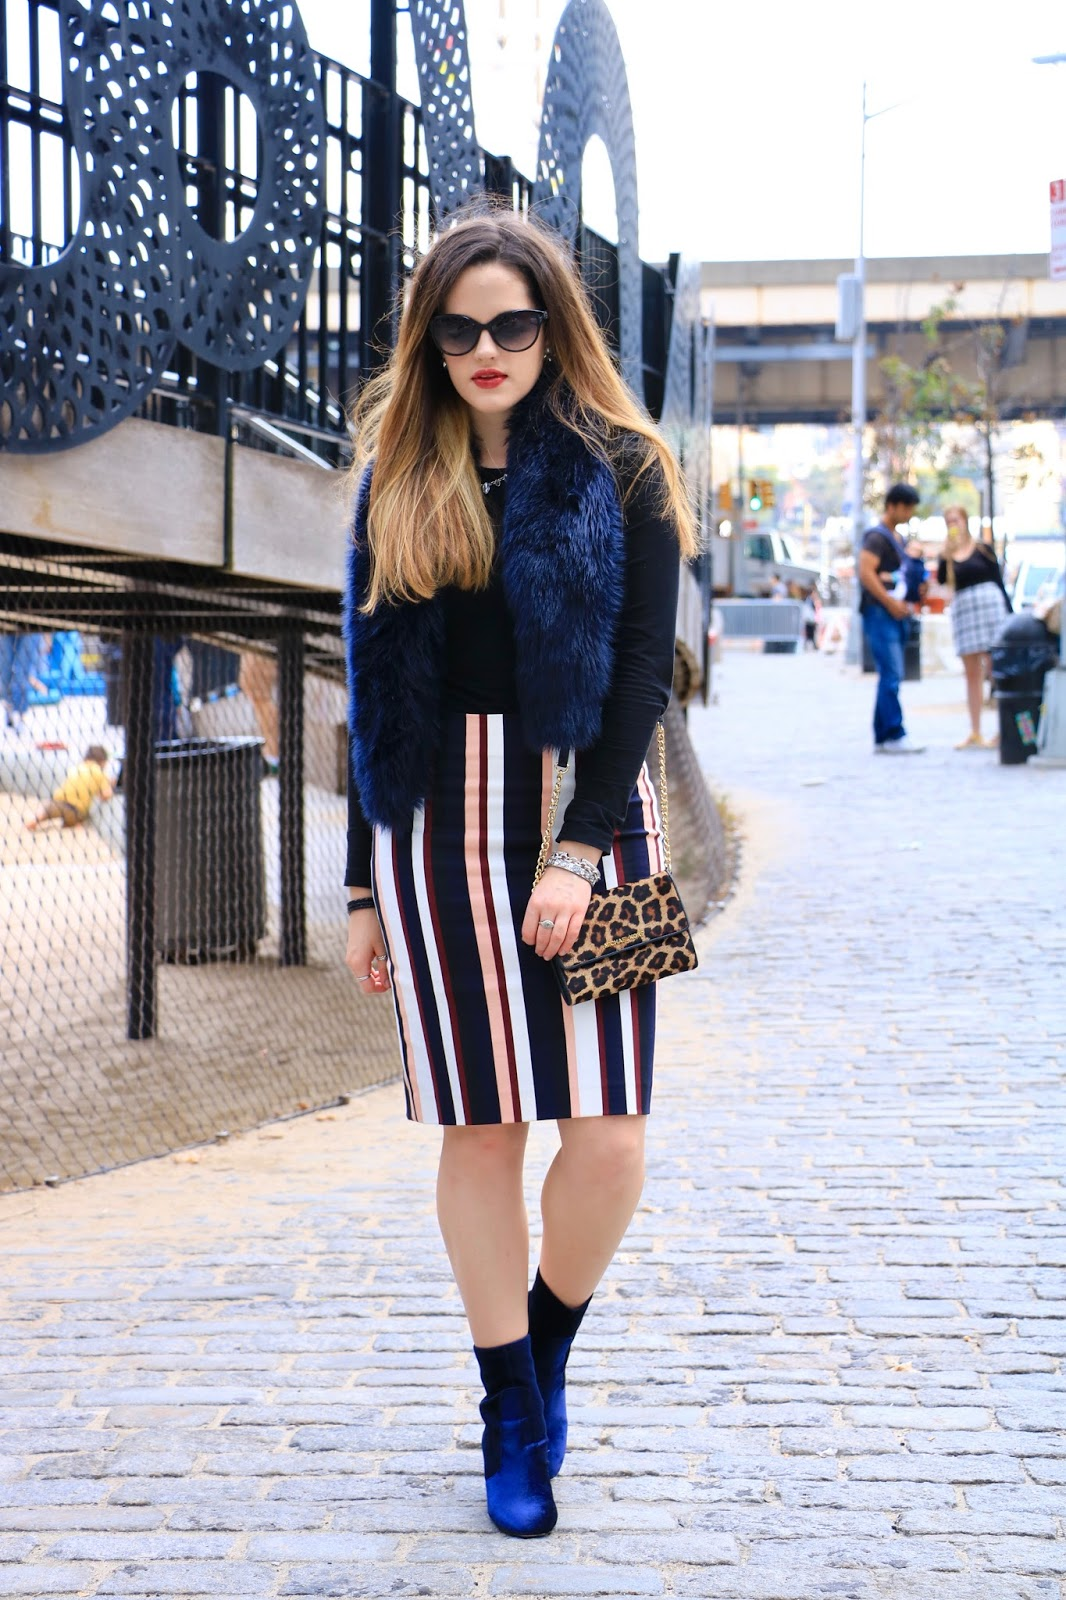 Nyc fashion blogger Kathleen Harper wearing Thanksgiving outfit ideas